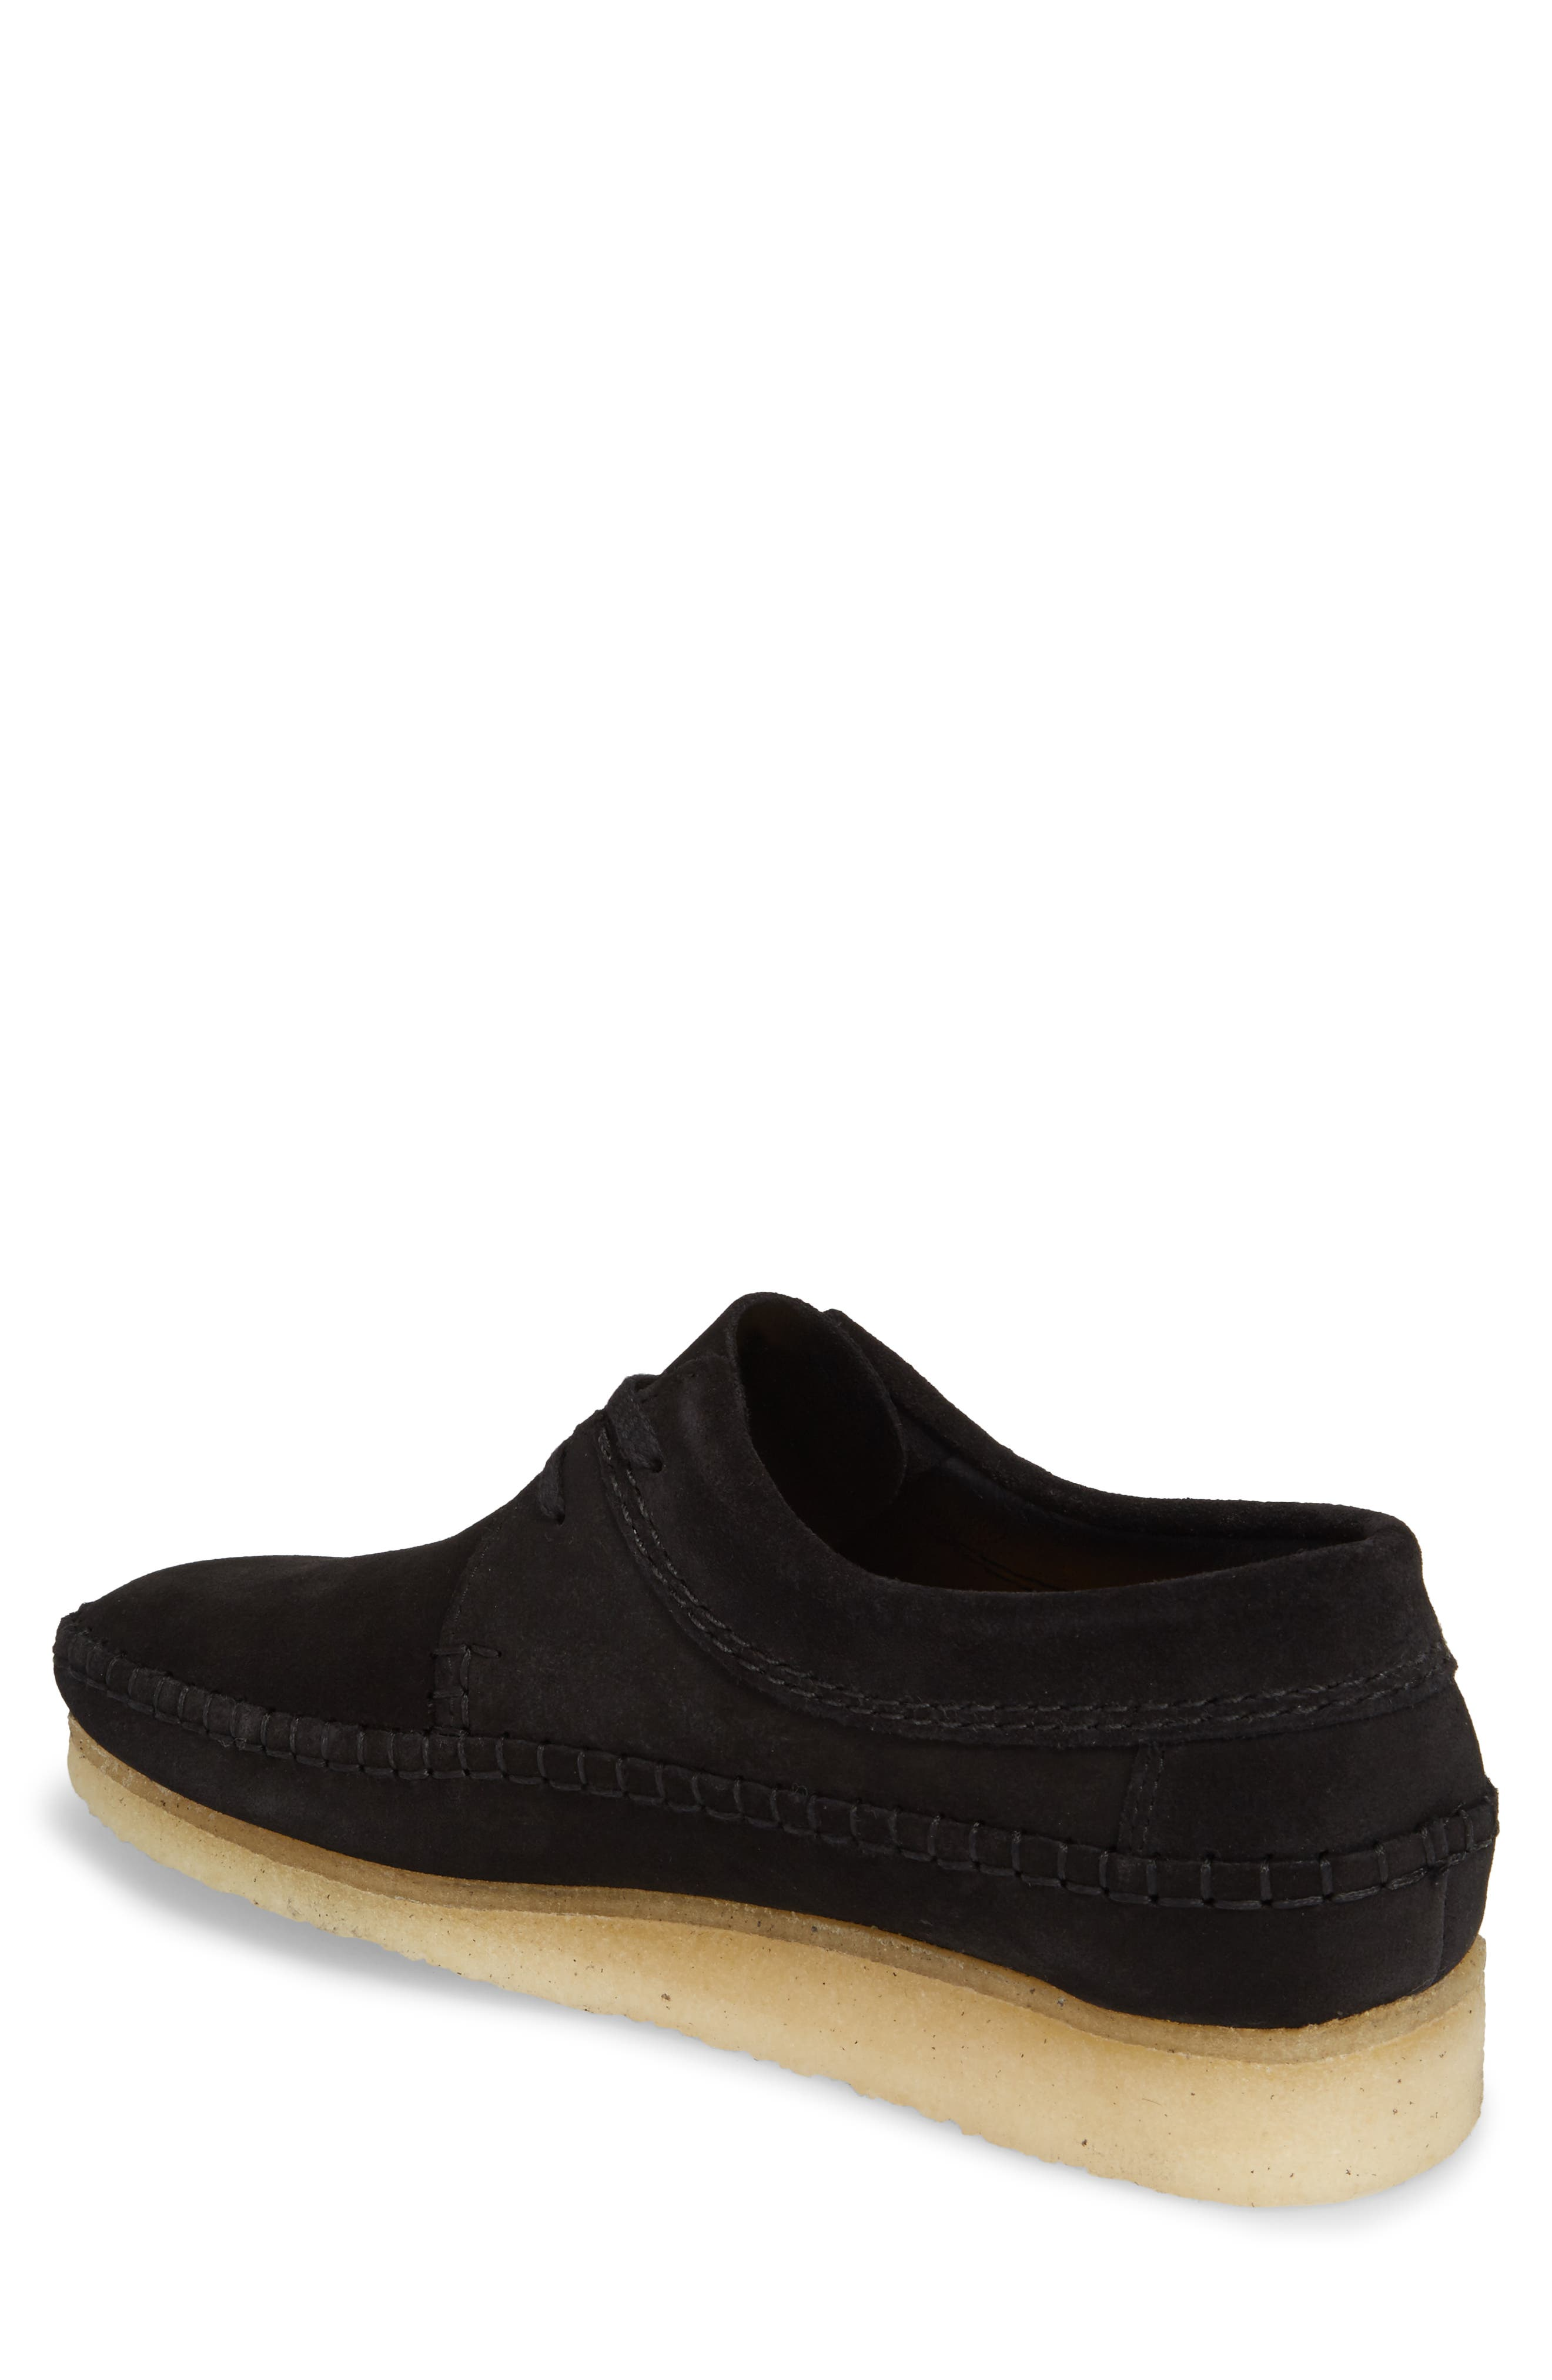 Weaver Moc Toe Derby,                             Alternate thumbnail 2, color,                             Black Suede